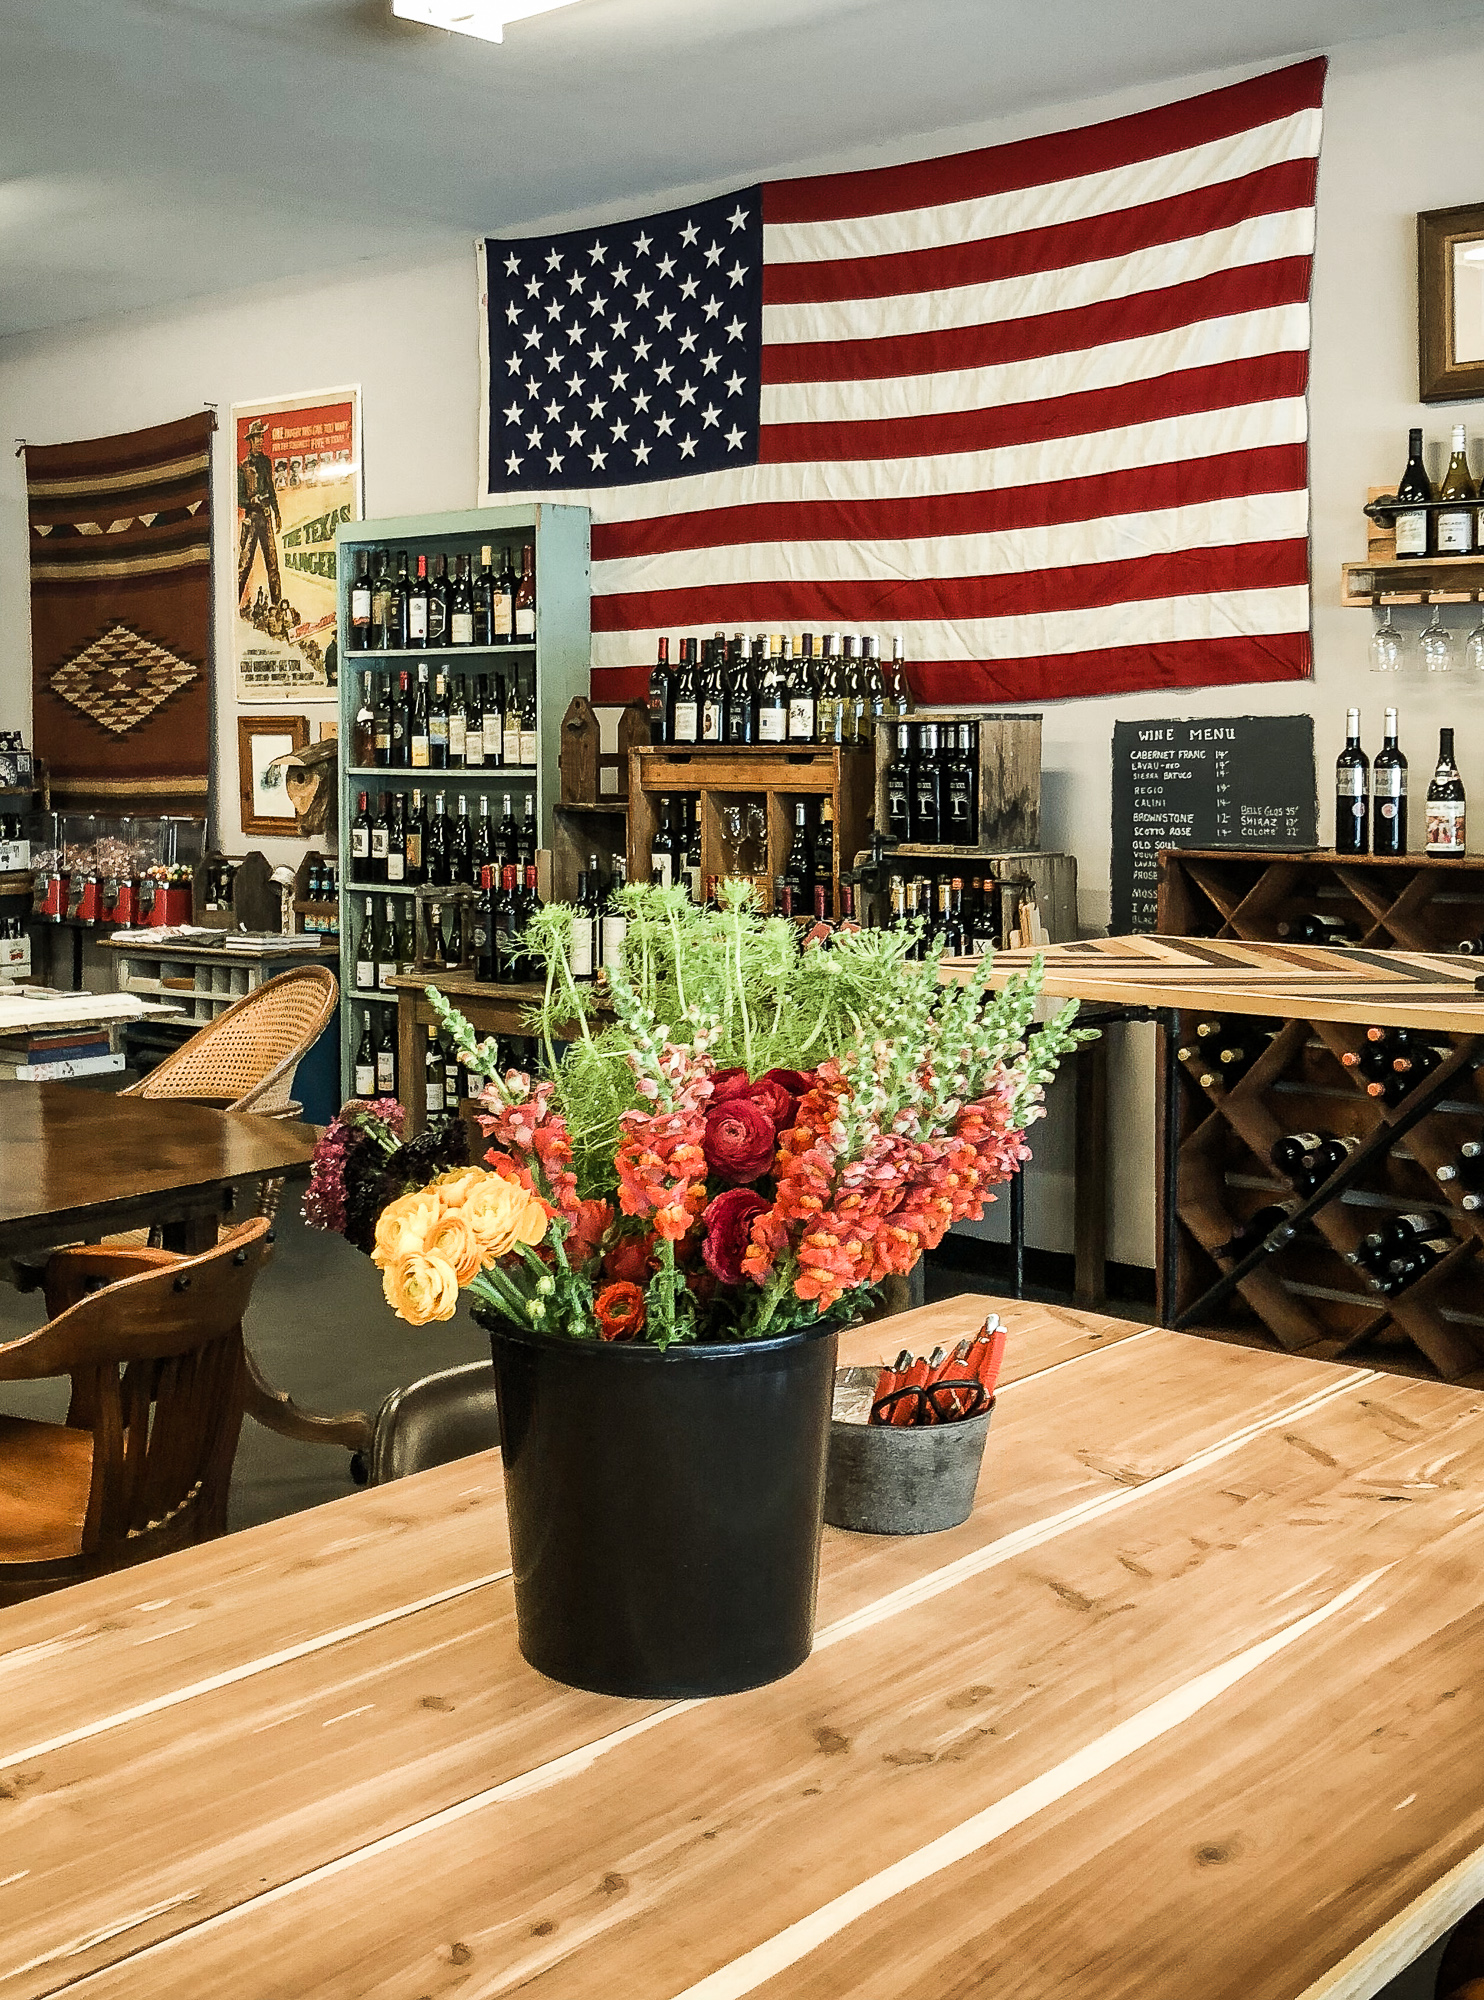 Fun Things To Do In Fayetteville North Carolina. Cary NC blogger Jessica Linn touring historic and downtown Fayetteville NC First Stop was LeClair's General Store for coffee, shopping, and flower arranging classes with Gathered.